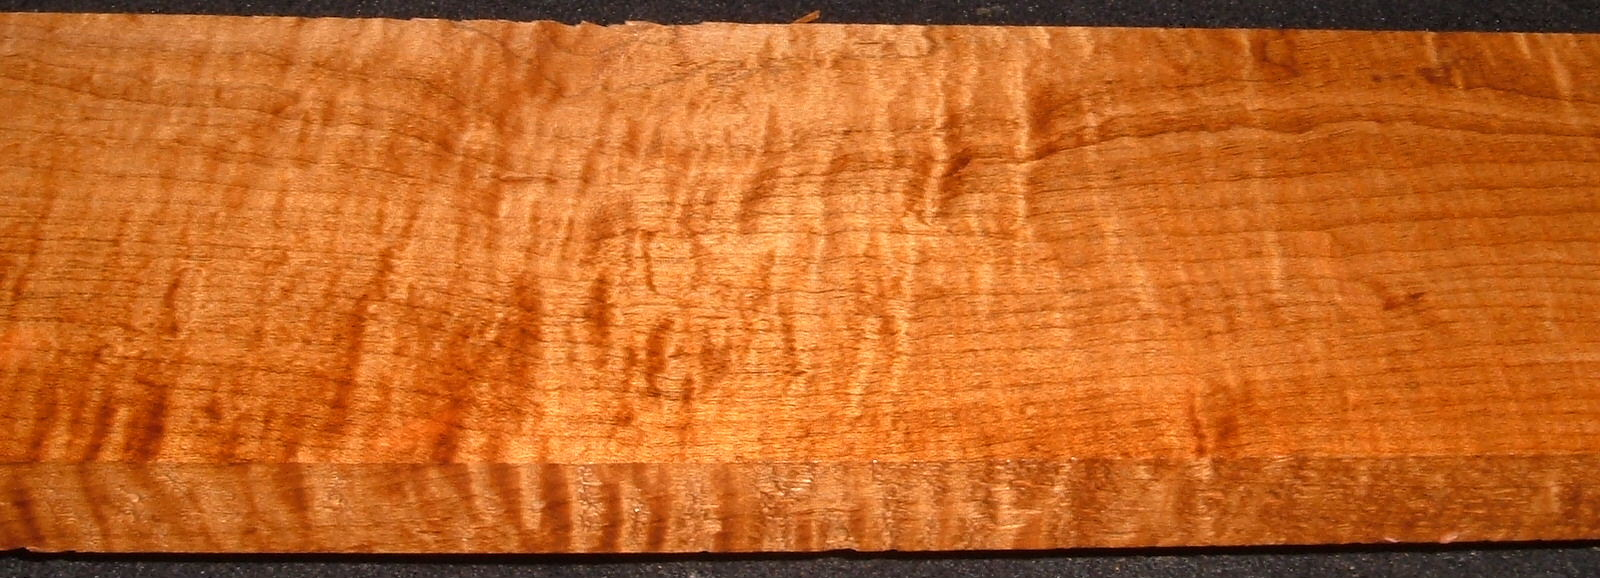 RHM2010-335,1x4-1/2x34, Roasted Torrefied Curly, Tiger Maple, Roasted Hard Maple